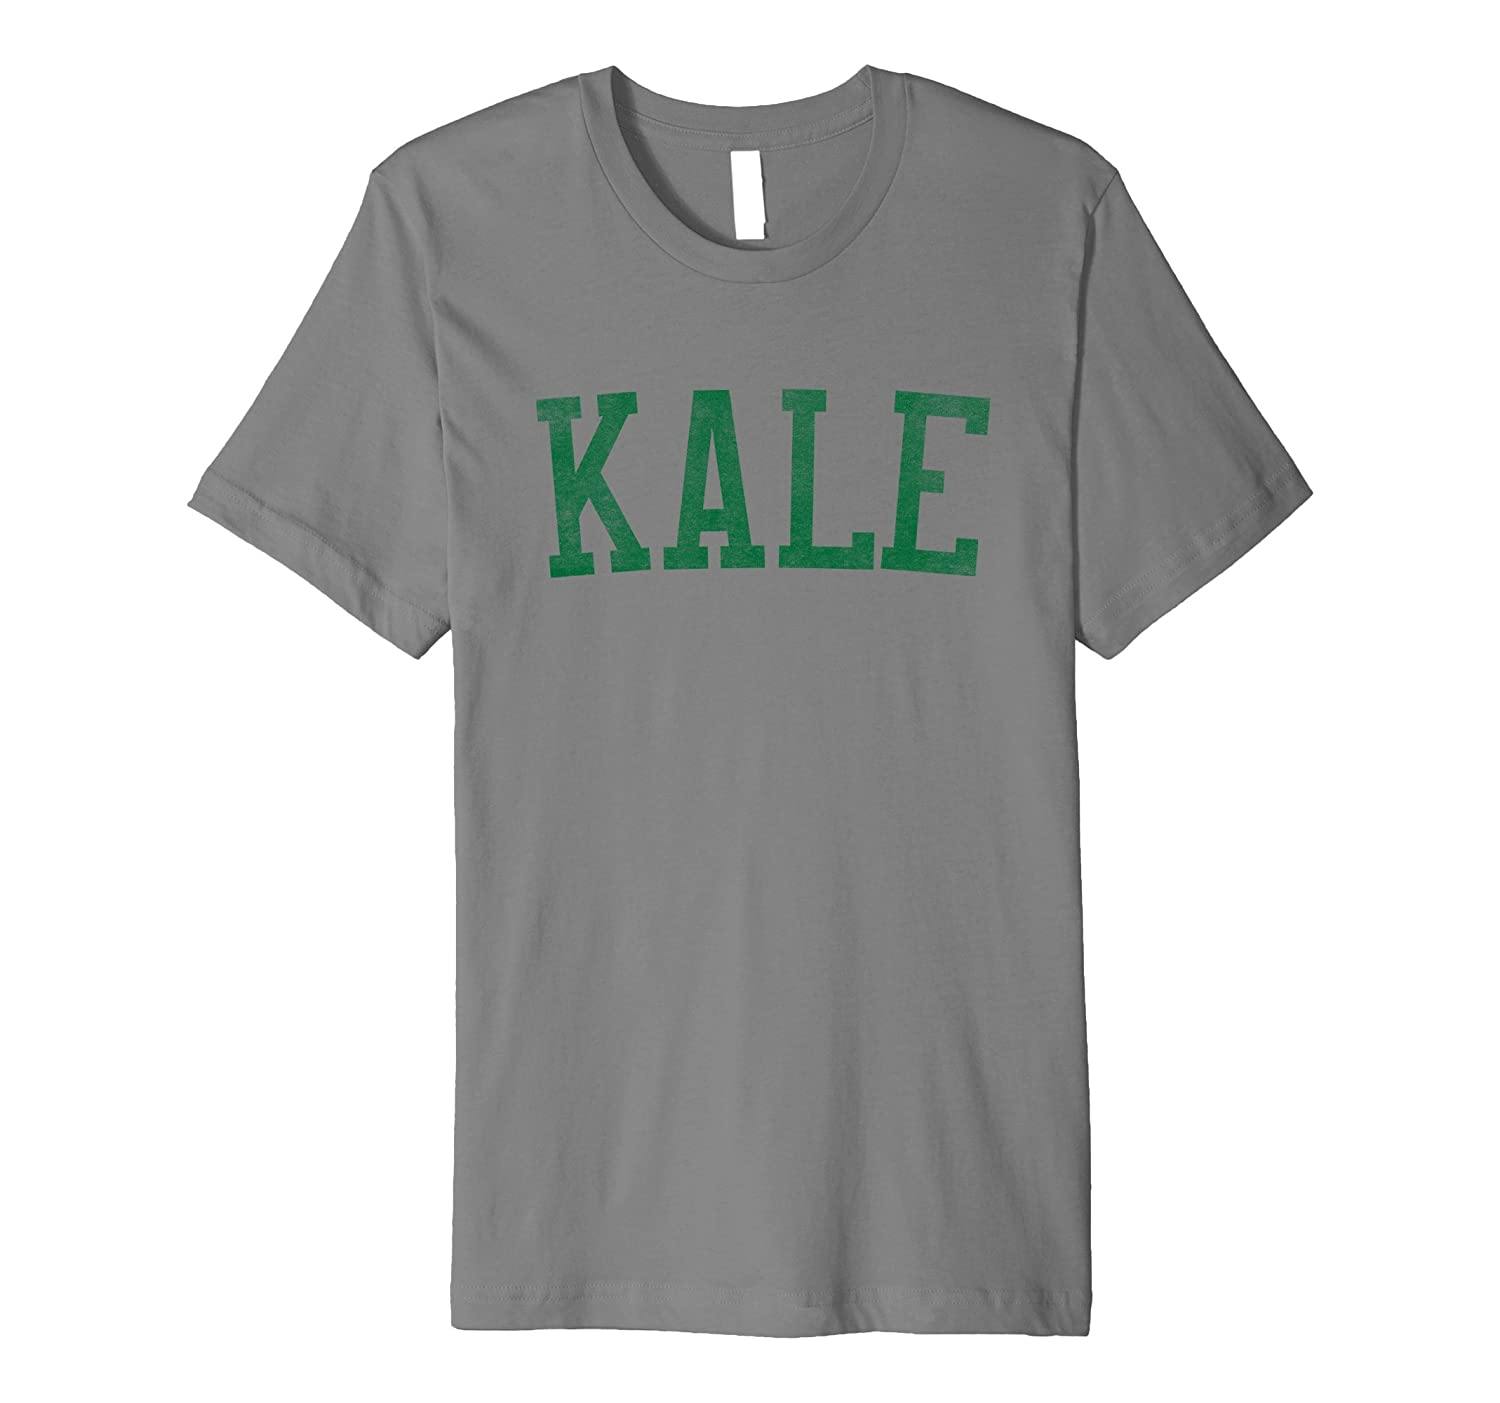 Kale College University Varsity Vegan Paleo Veg T-shirt-CD